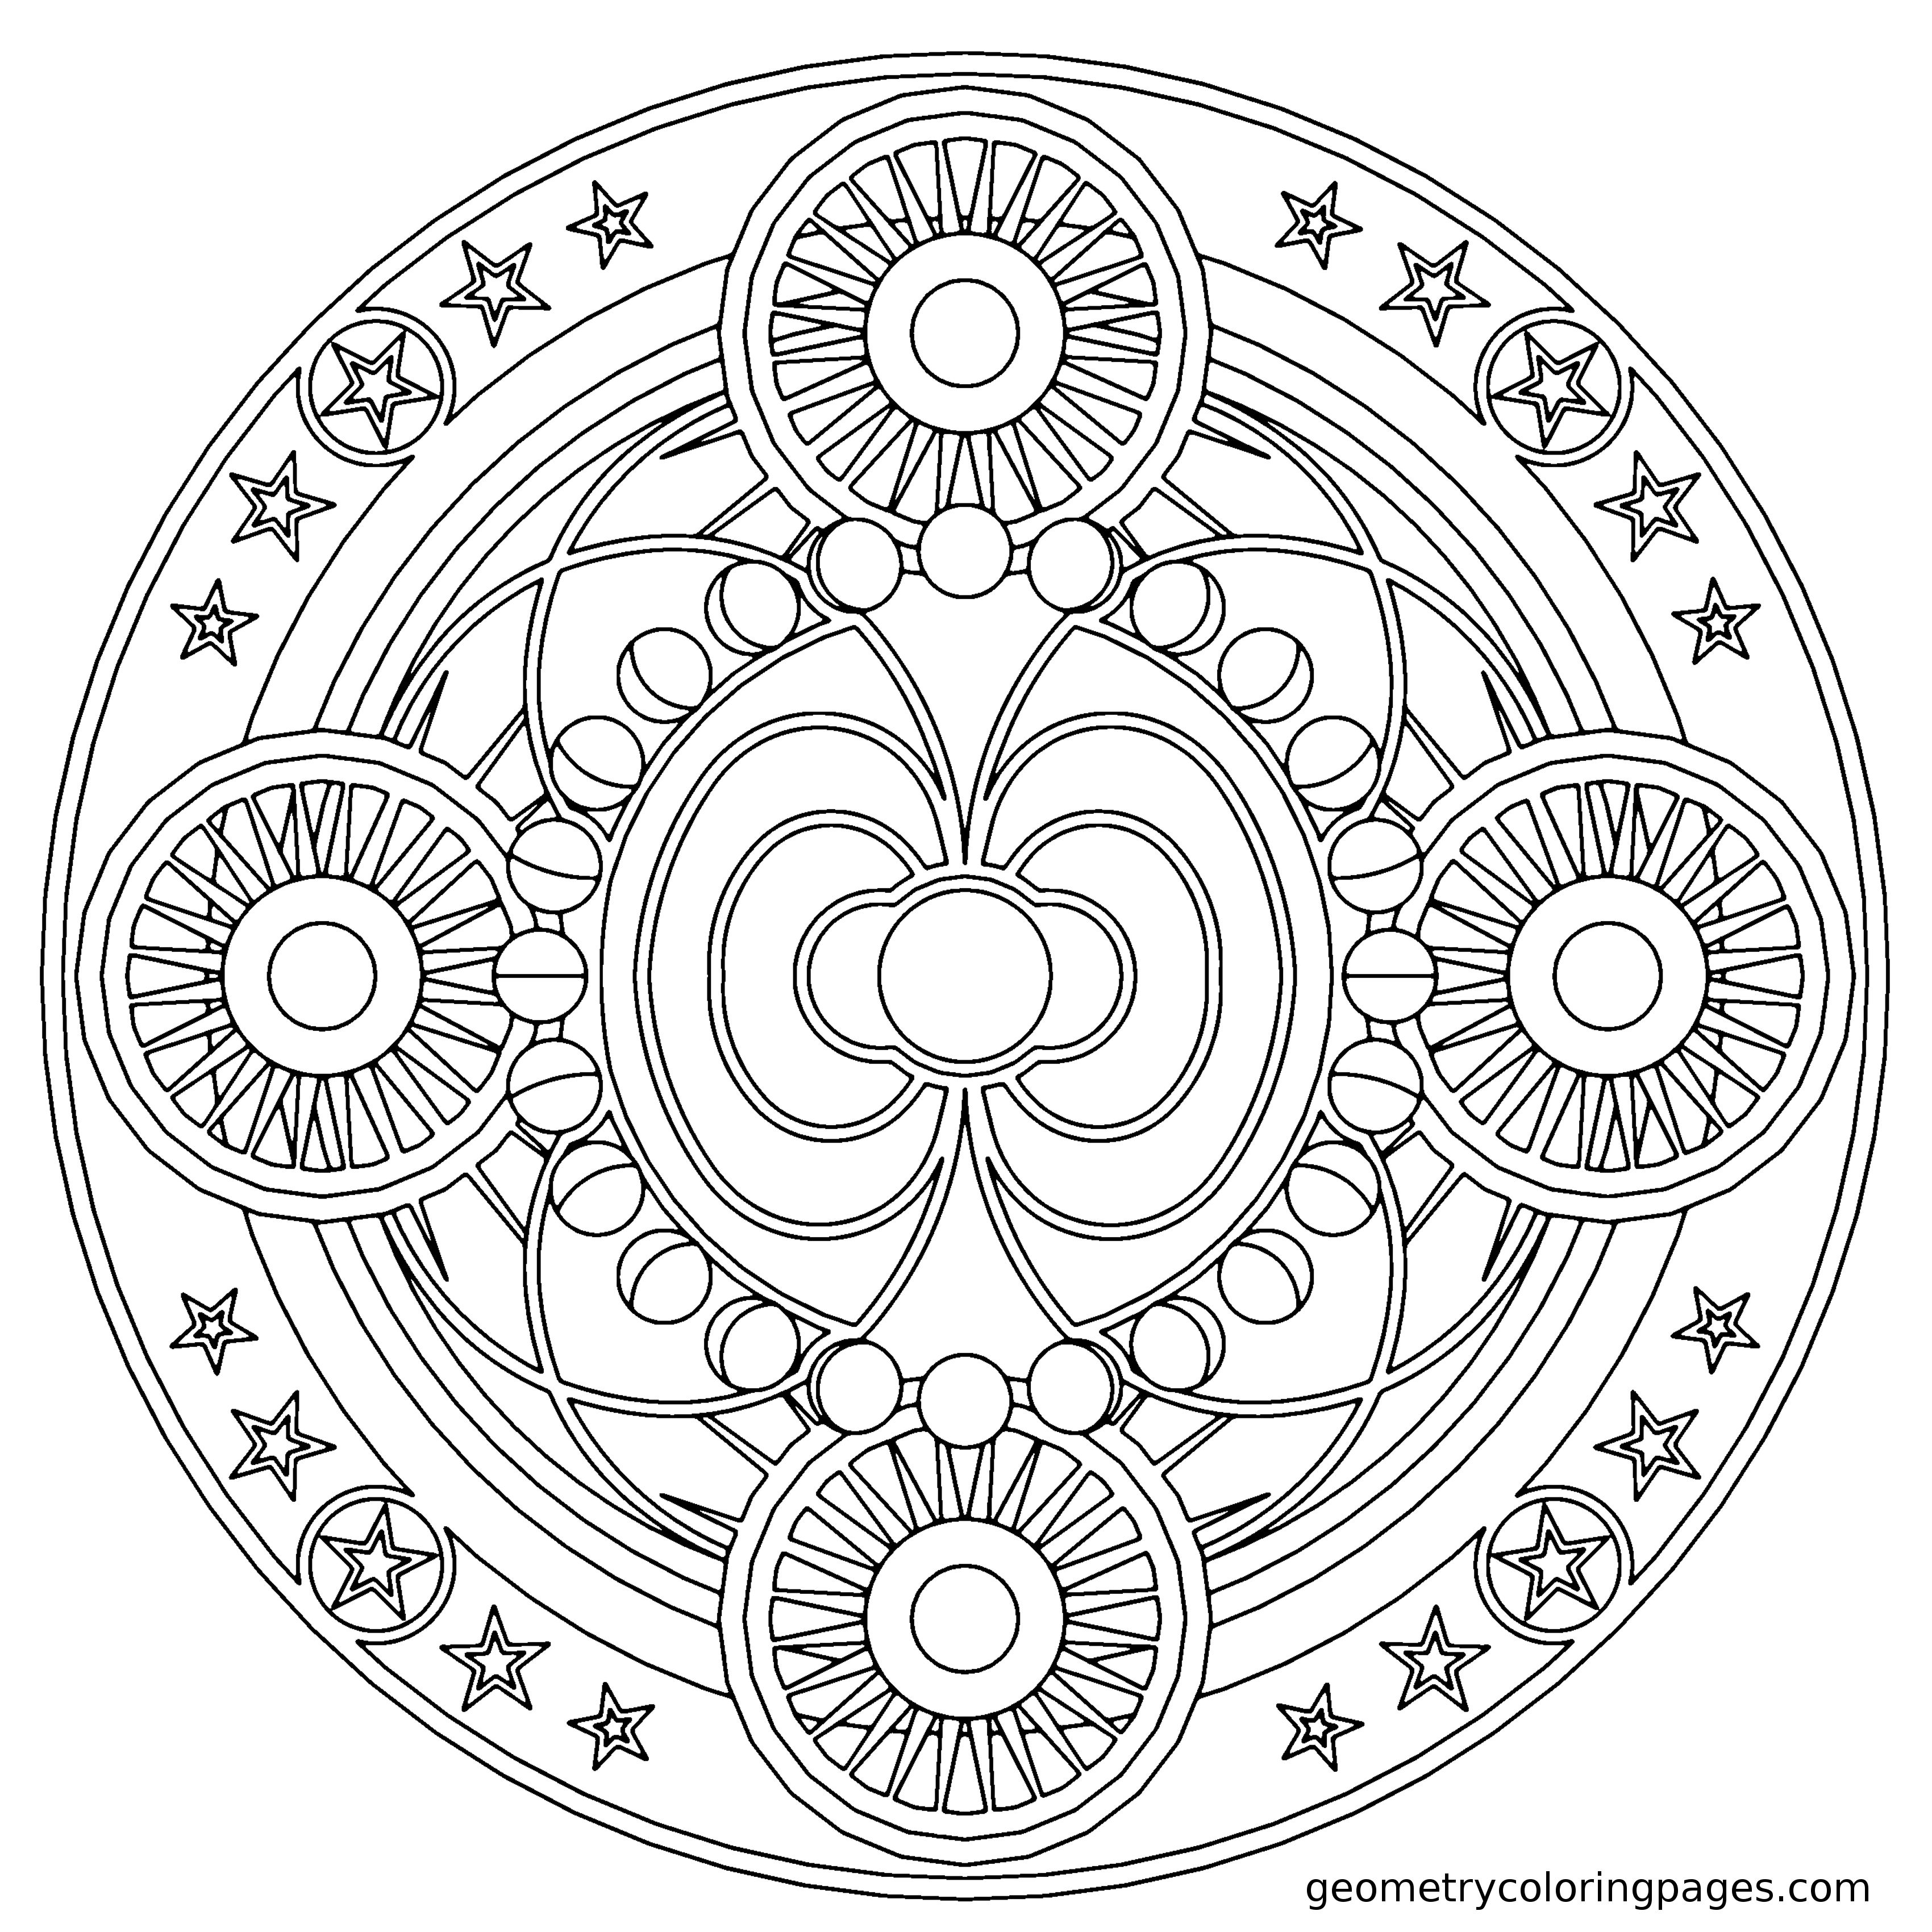 Coloring pages geometric - Free Geometric Mandala Coloring Pages Geometric Mandala Coloring Pages Tattoo